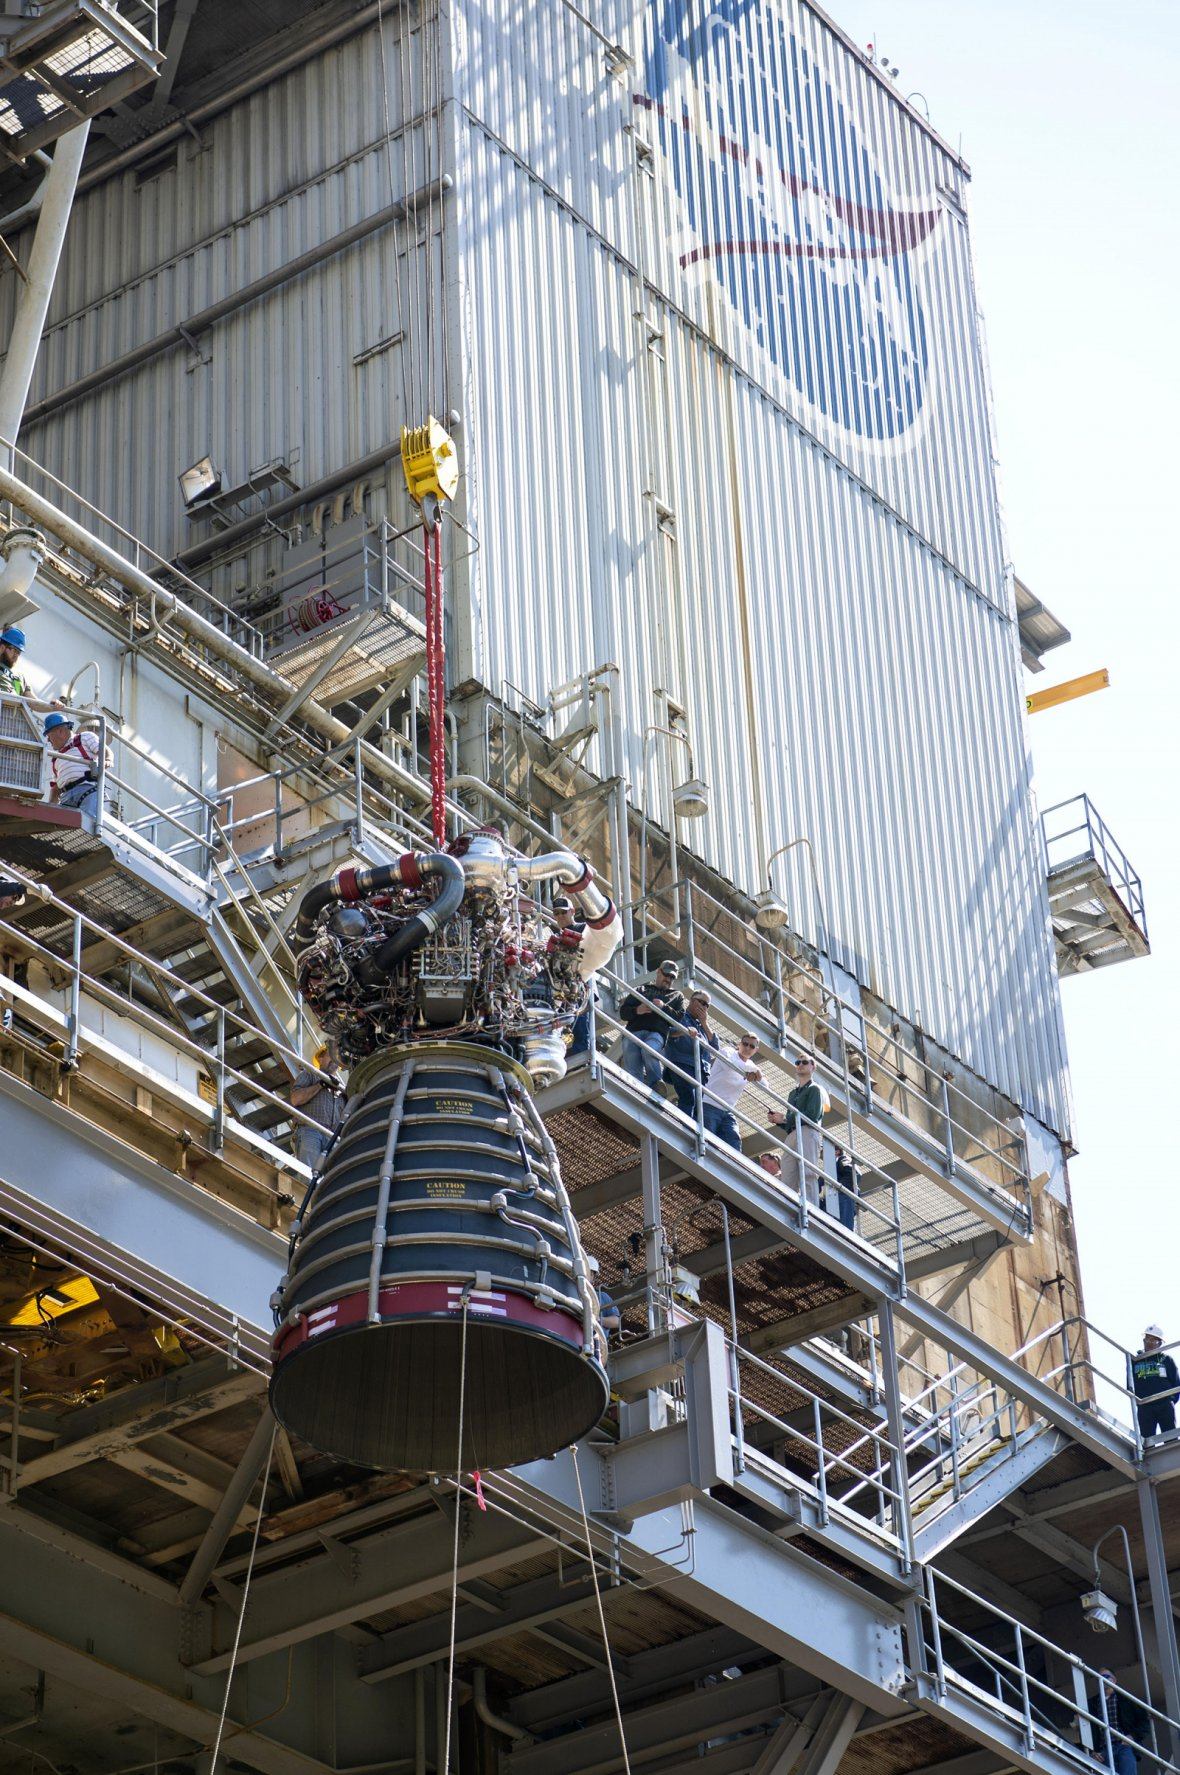 RS-25 flight engine No. 2062 is lifted onto the A-1 Test Stand at NASA's Stennis Space Center near Bay St. Louis, Miss. The Aerojet Rocketdyne-built engine was delivered to the stand March 20 and test fired April 4